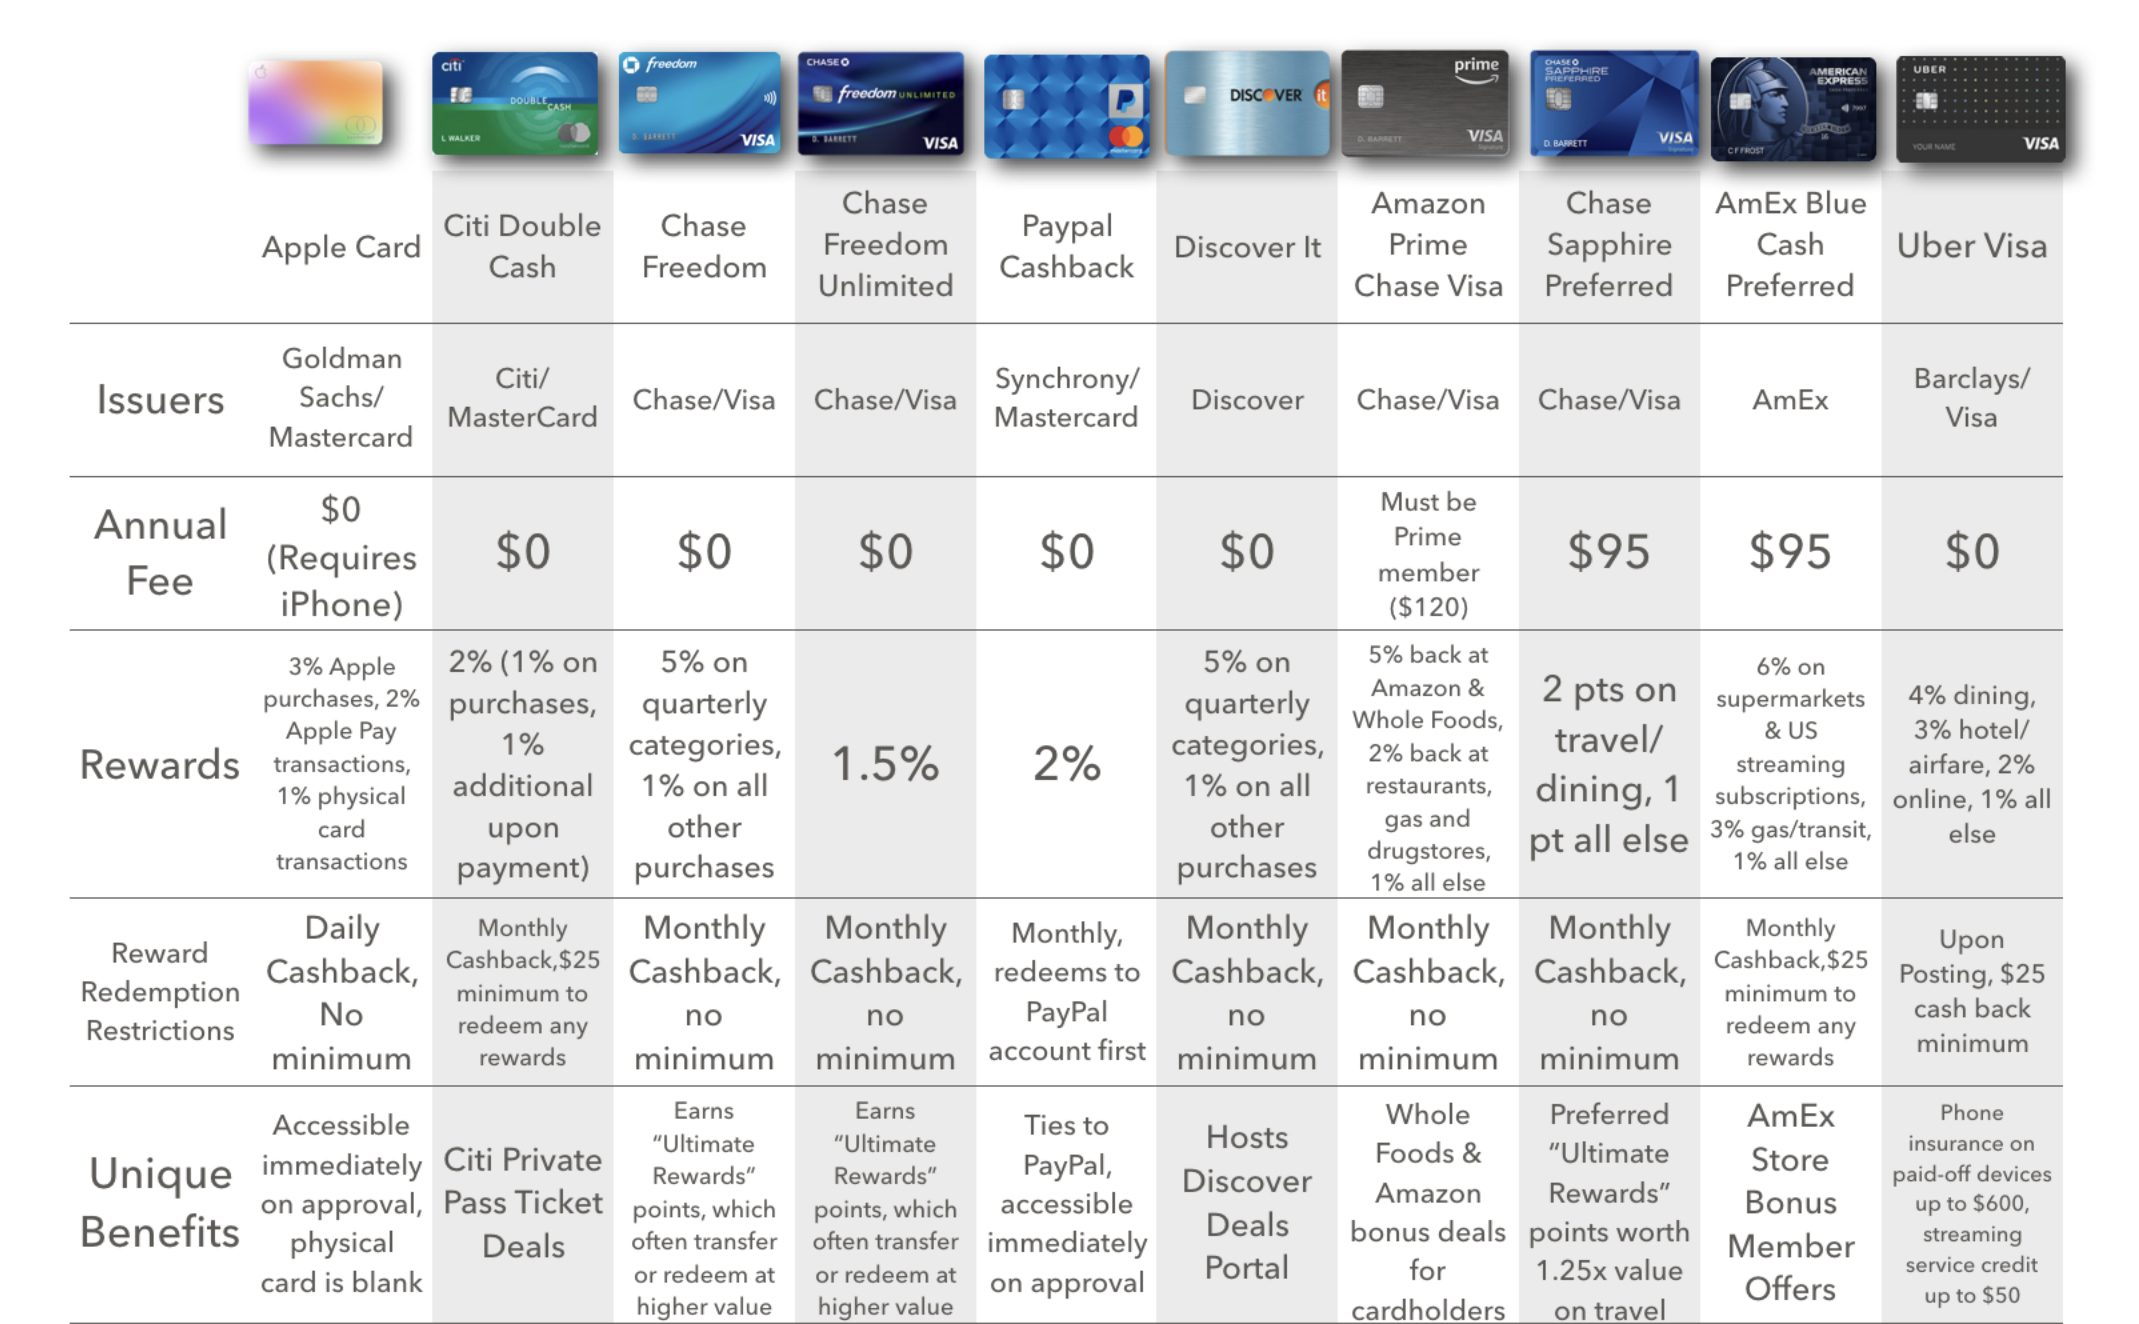 apple card comparison chart